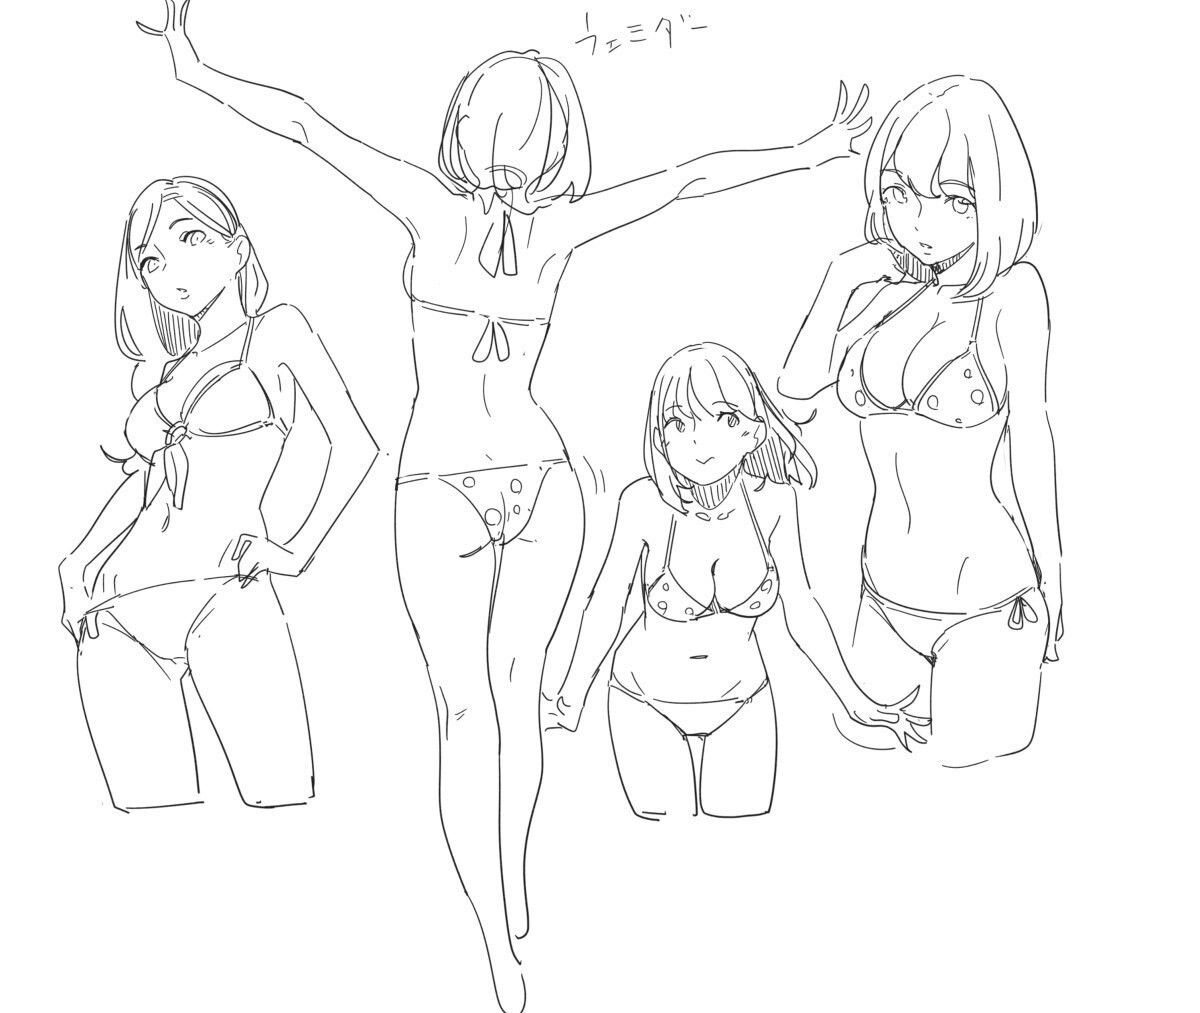 Pin by Black Oreo on Anime Girl Drawings | Pinterest | Pose, Anatomy ...